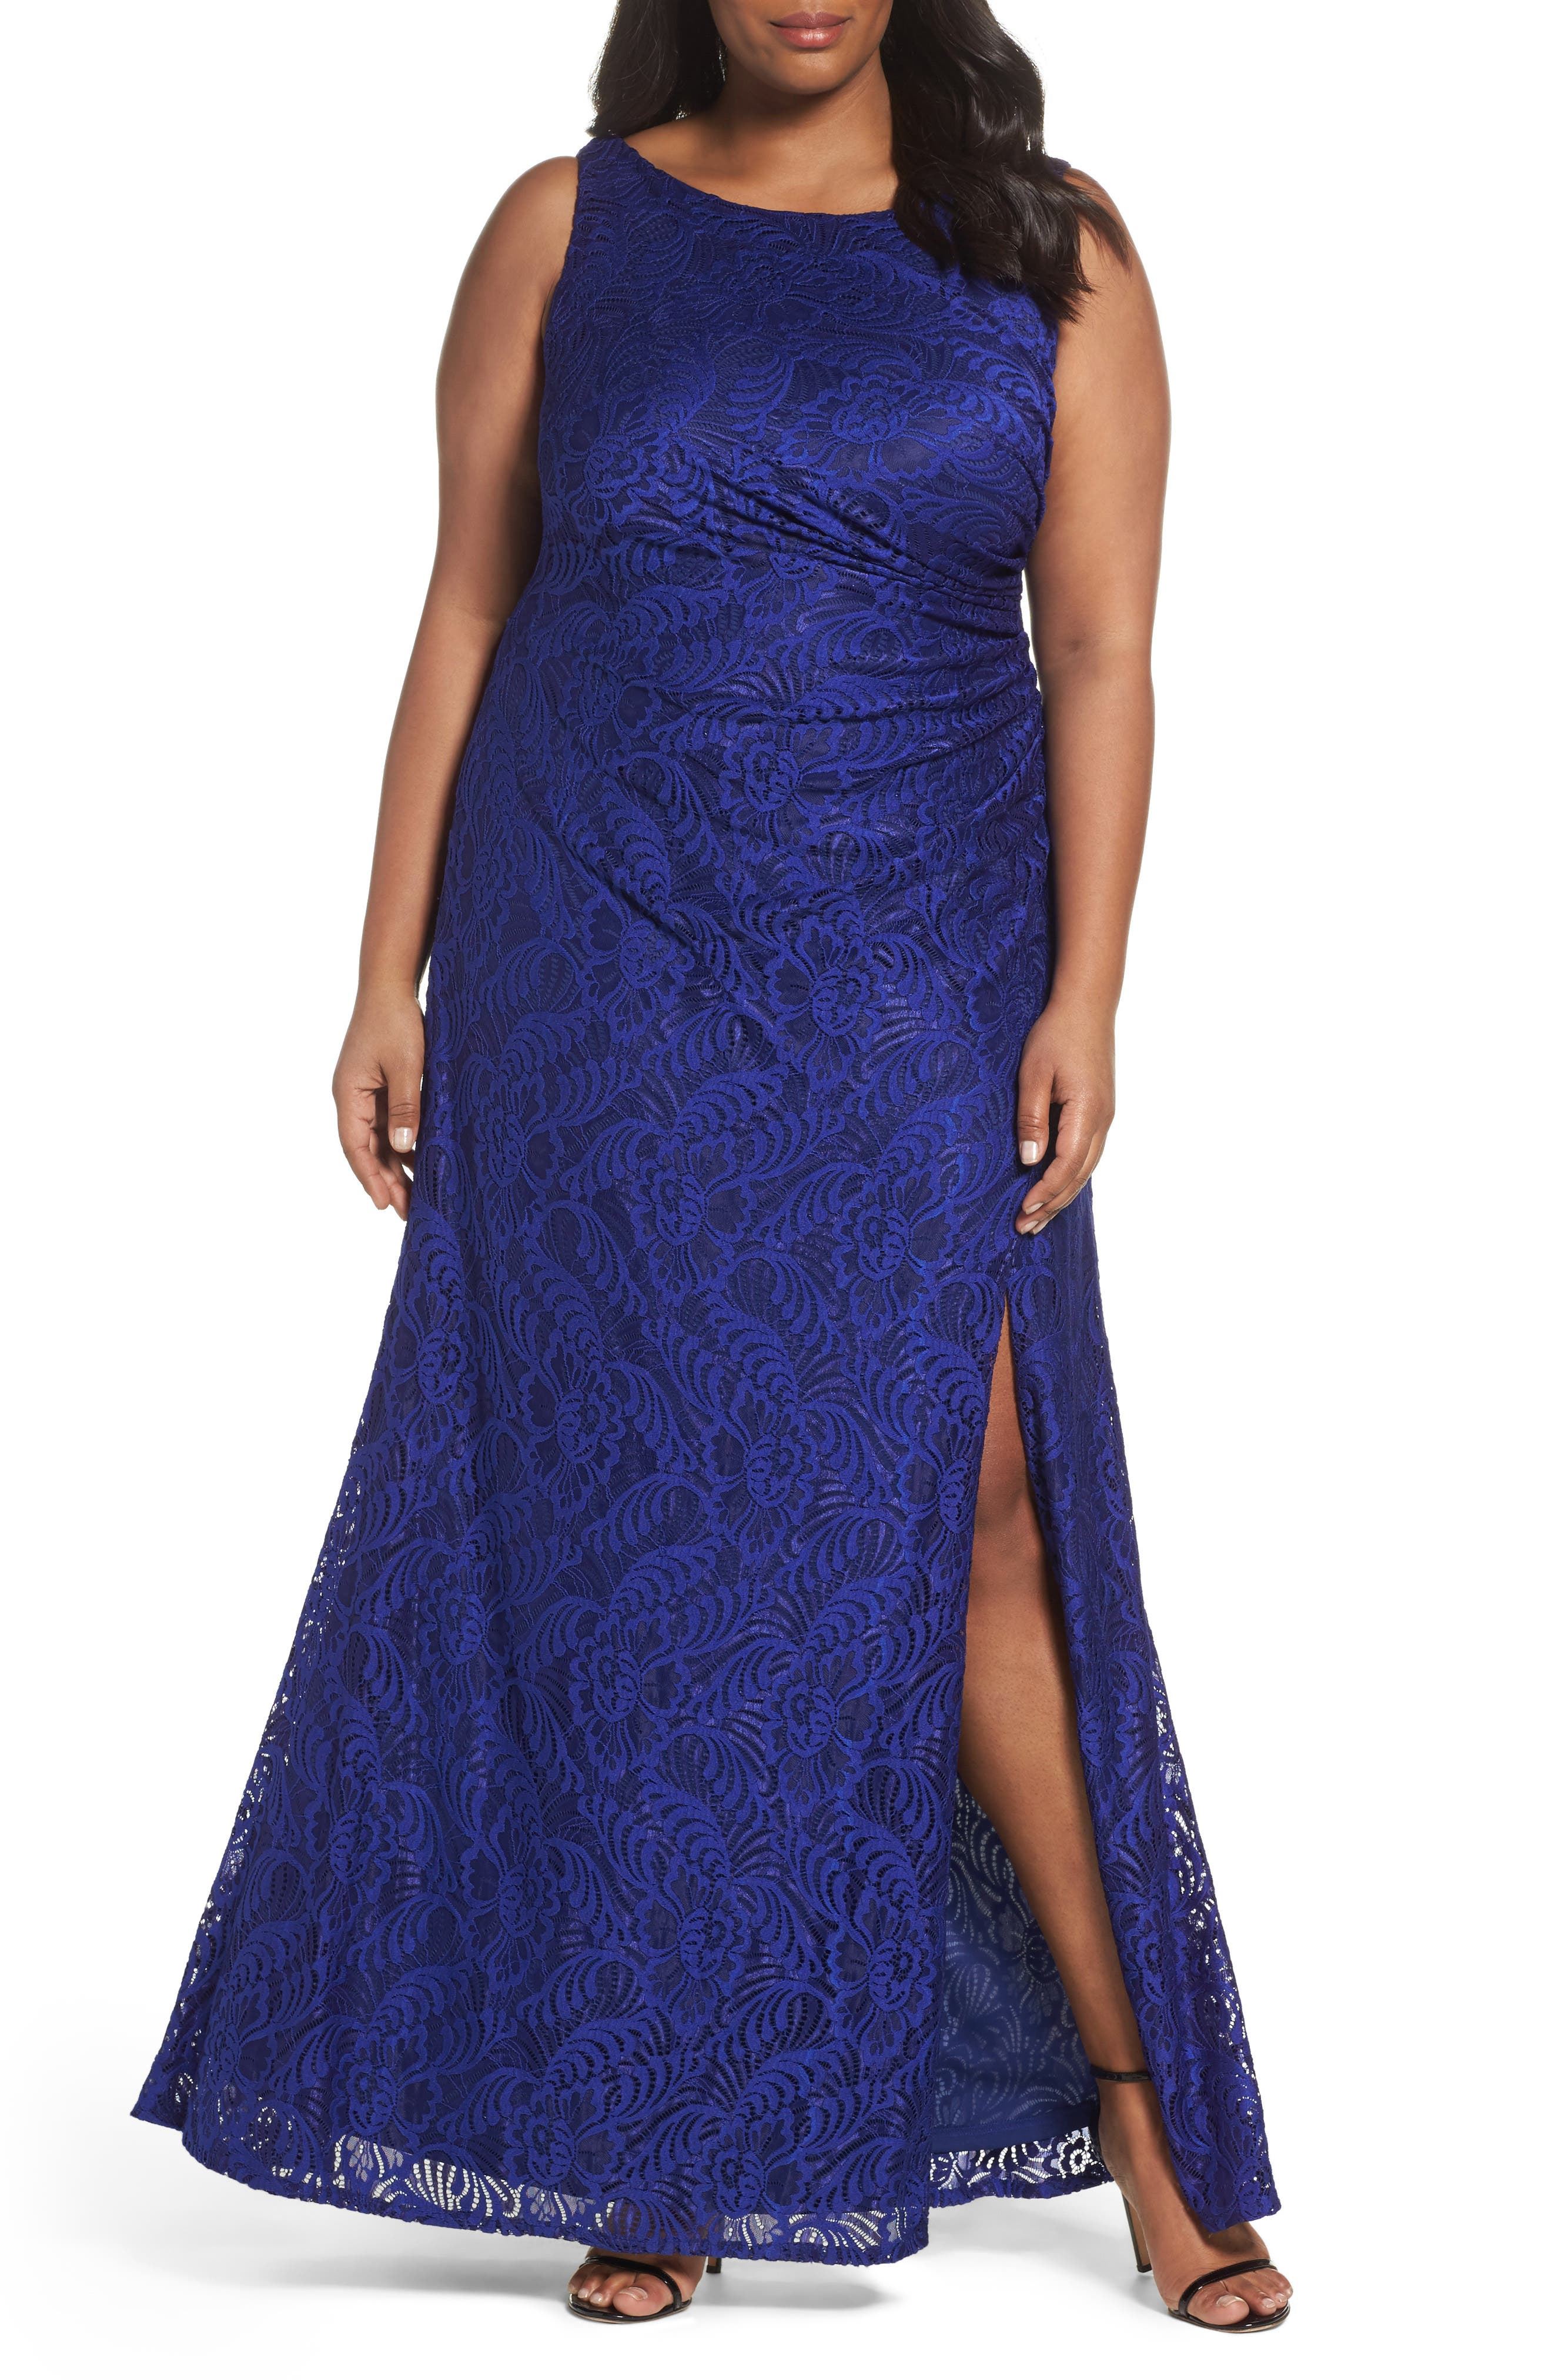 Adrianna Papell Cowl Back Stretch Lace Gown (Plus Size)